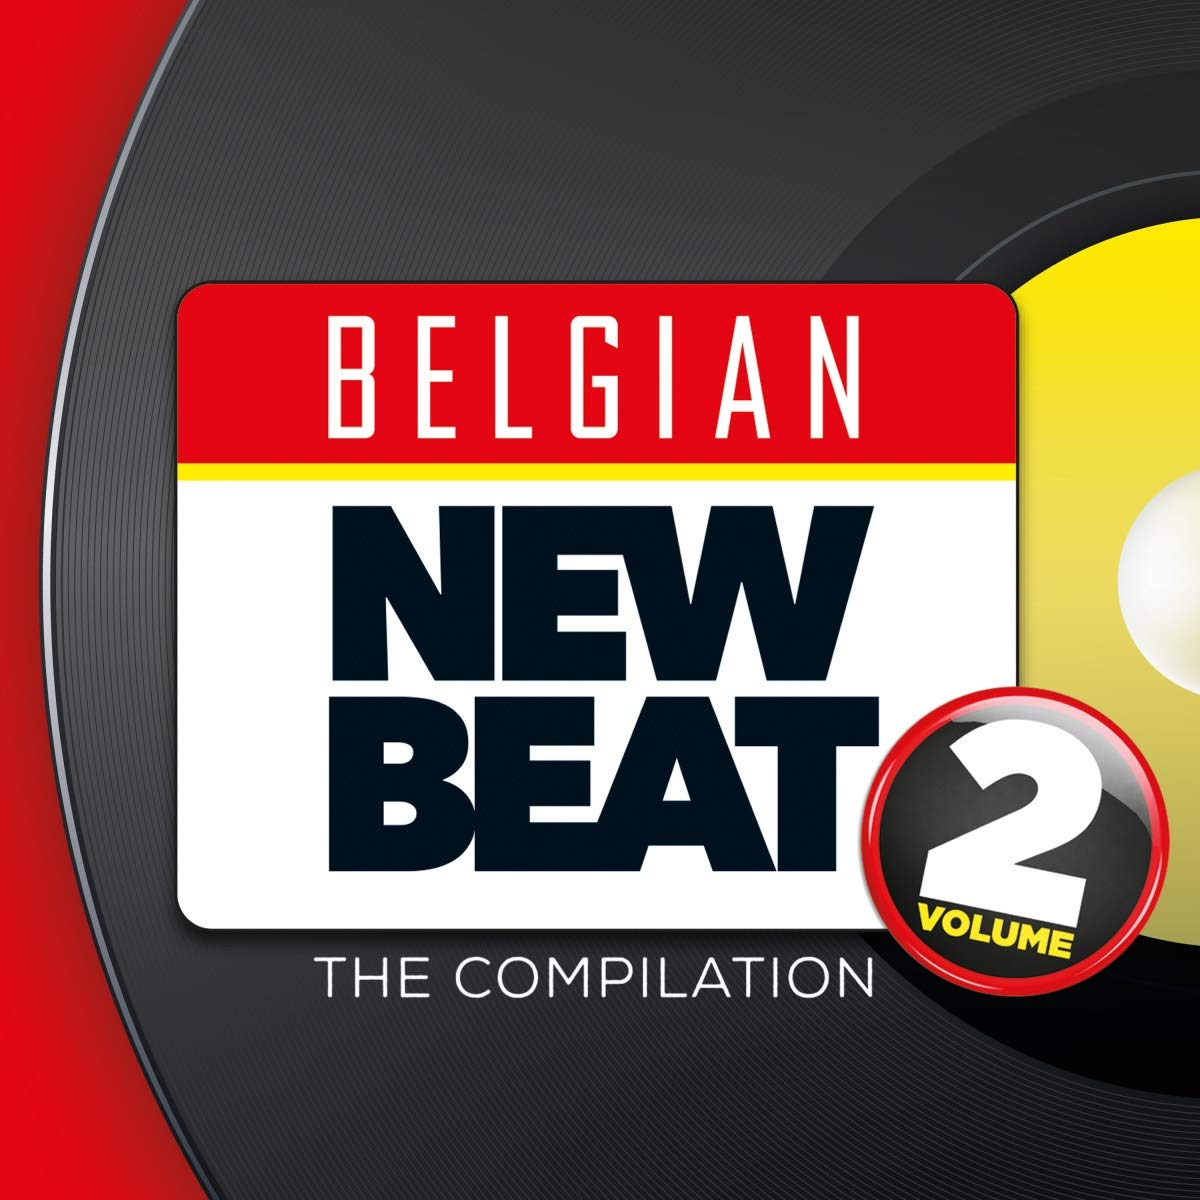 CD : VARIOUS ARTISTS - Belgian New Beat Volume 2 (4 Pack)